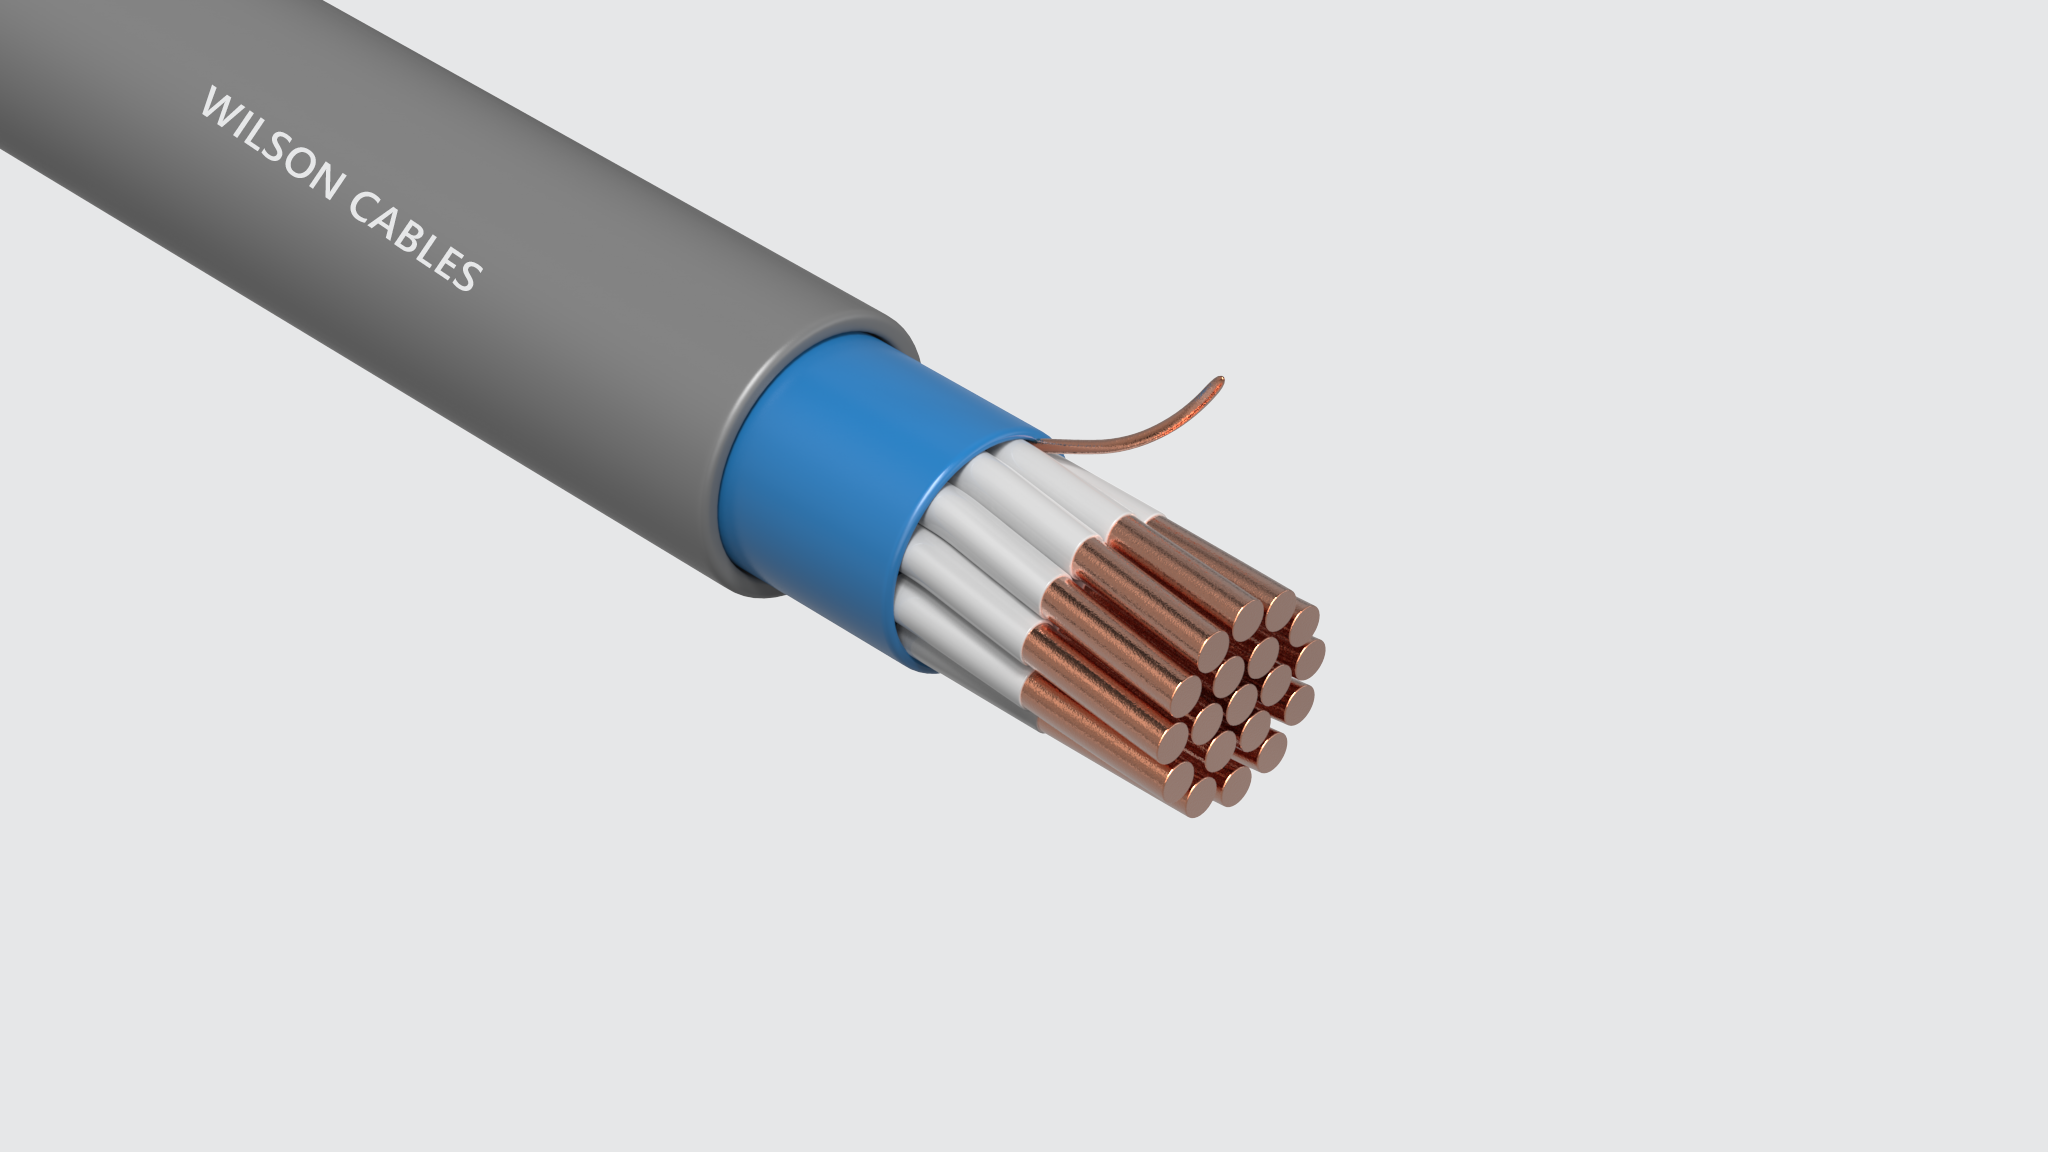 MIM-210 PVC Sheathed Shipboard Instrumentation Cables